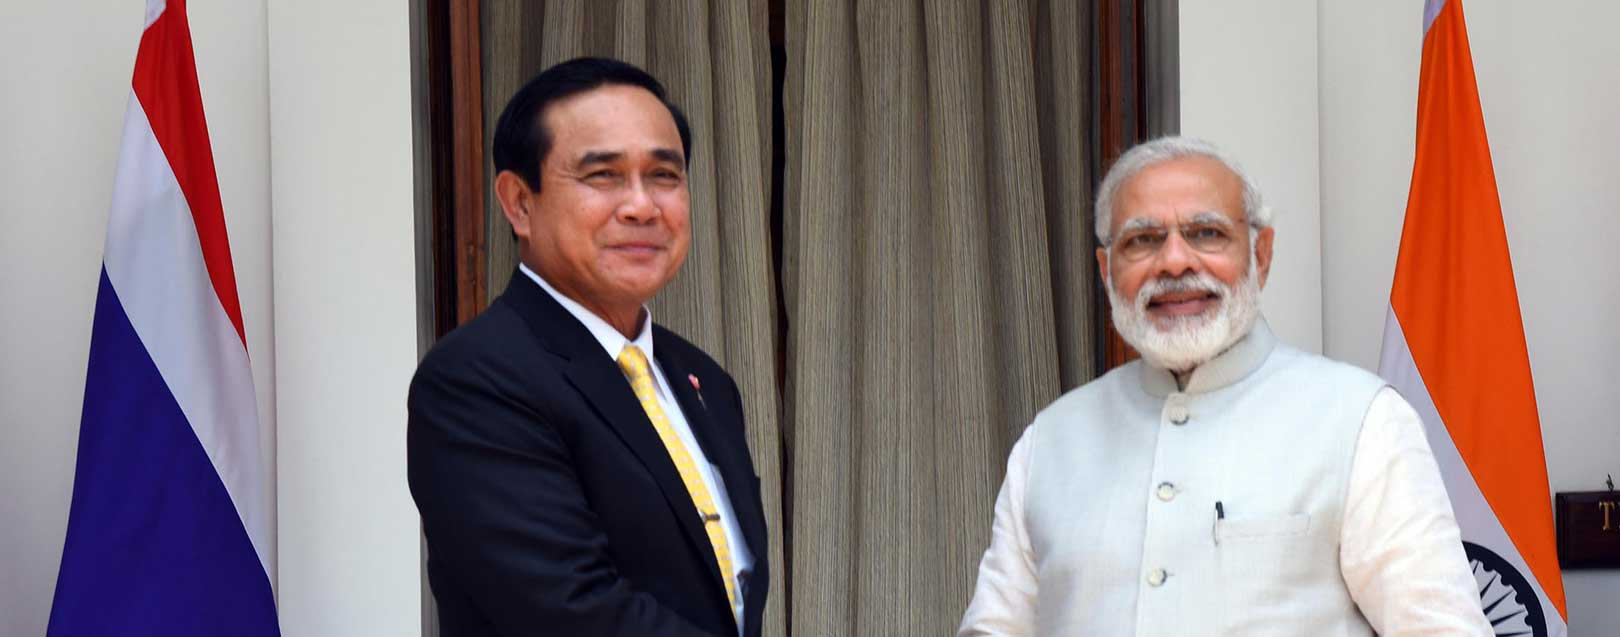 Thailand seeks to boost trade, investment with India